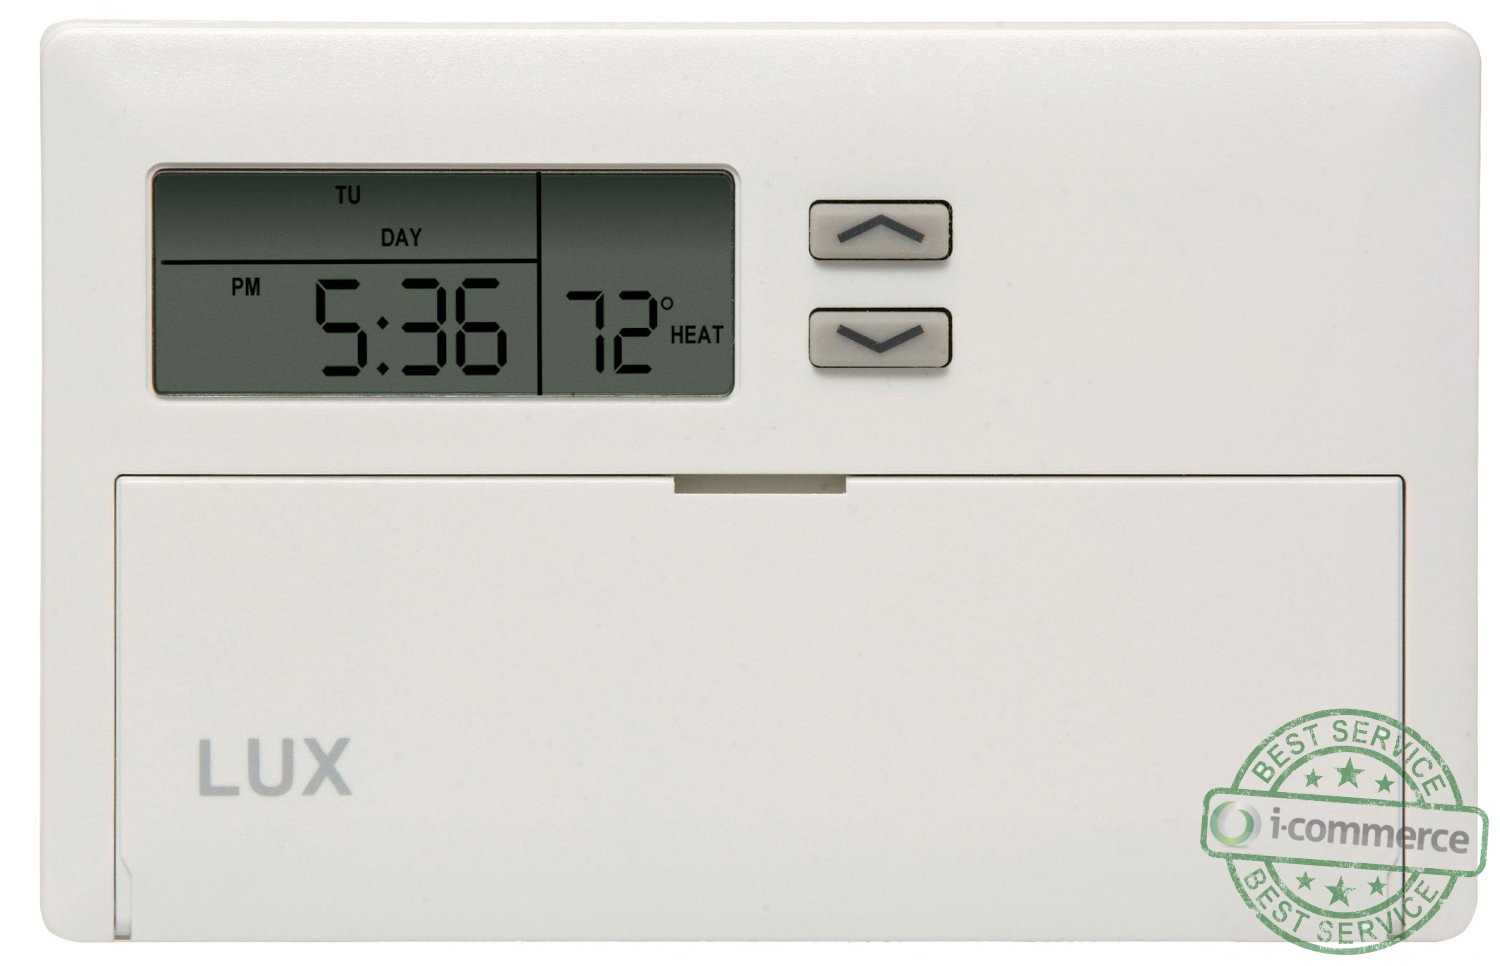 Lux 1500 Thermostat Wiring Diagram Simple Guide About Tx 9000